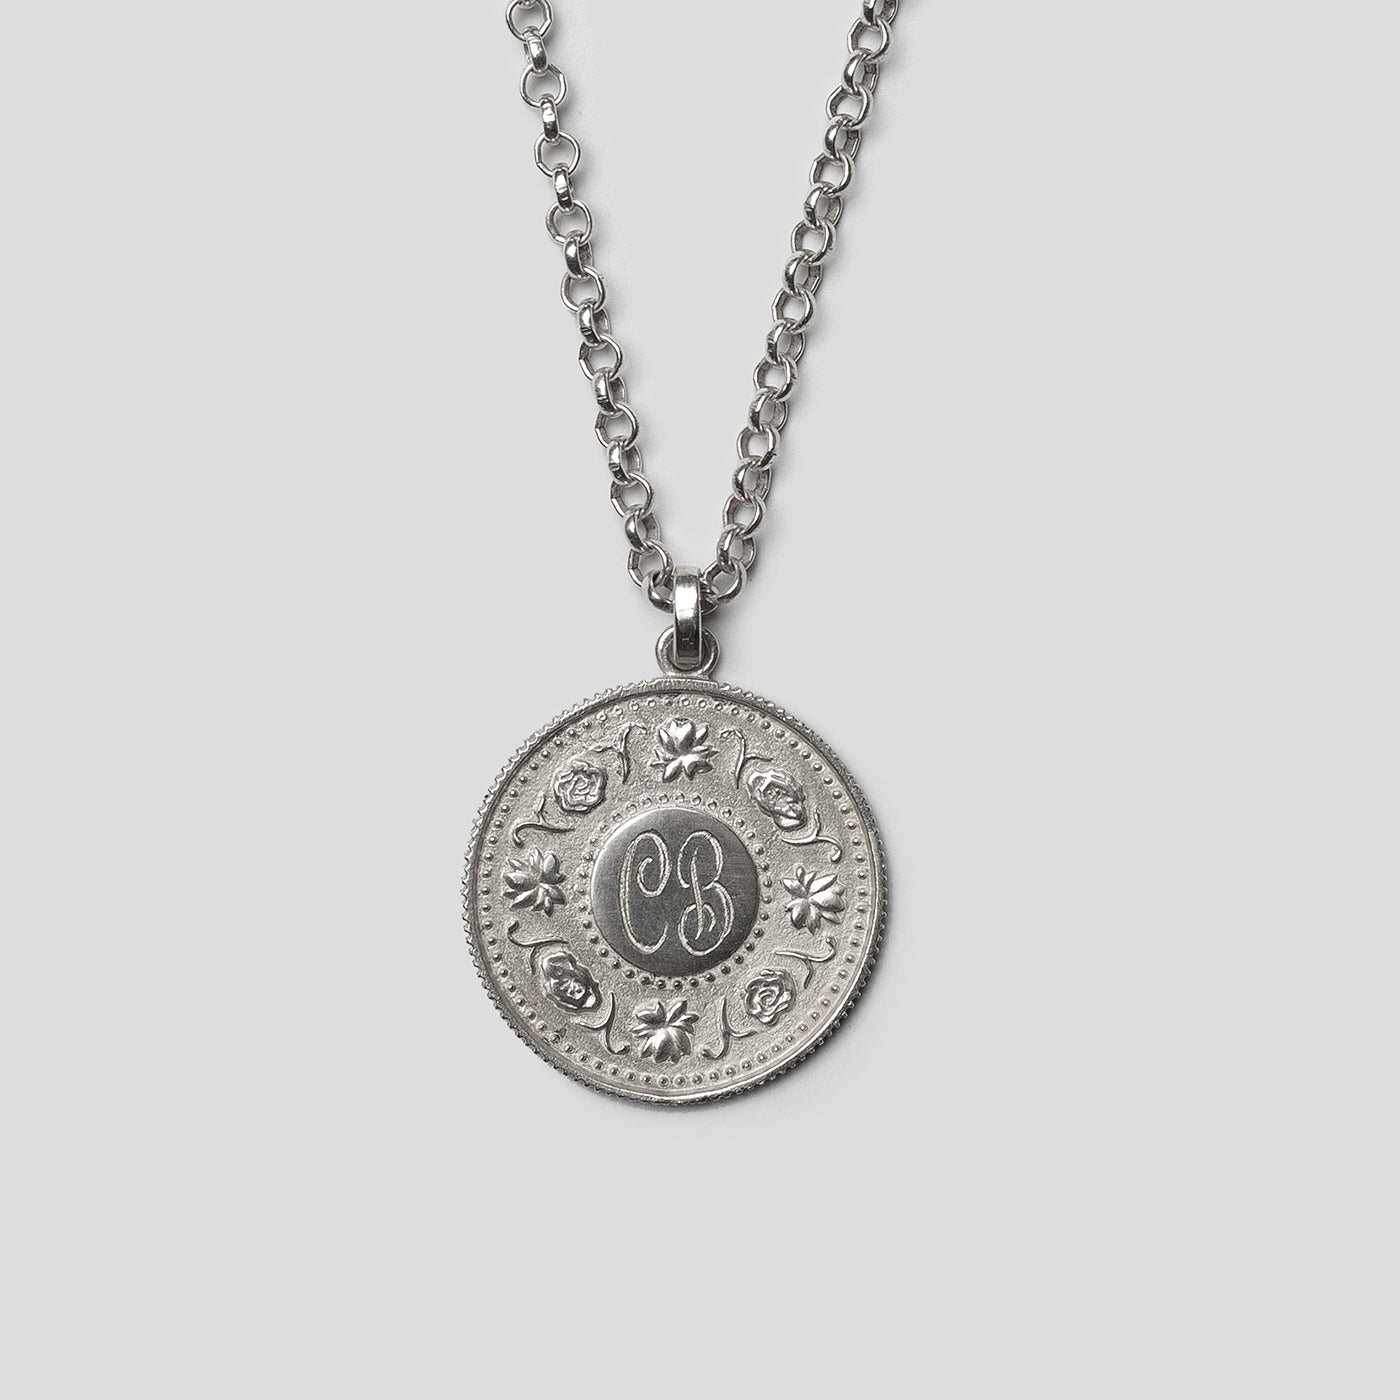 front of Silver precious coin necklace on white background